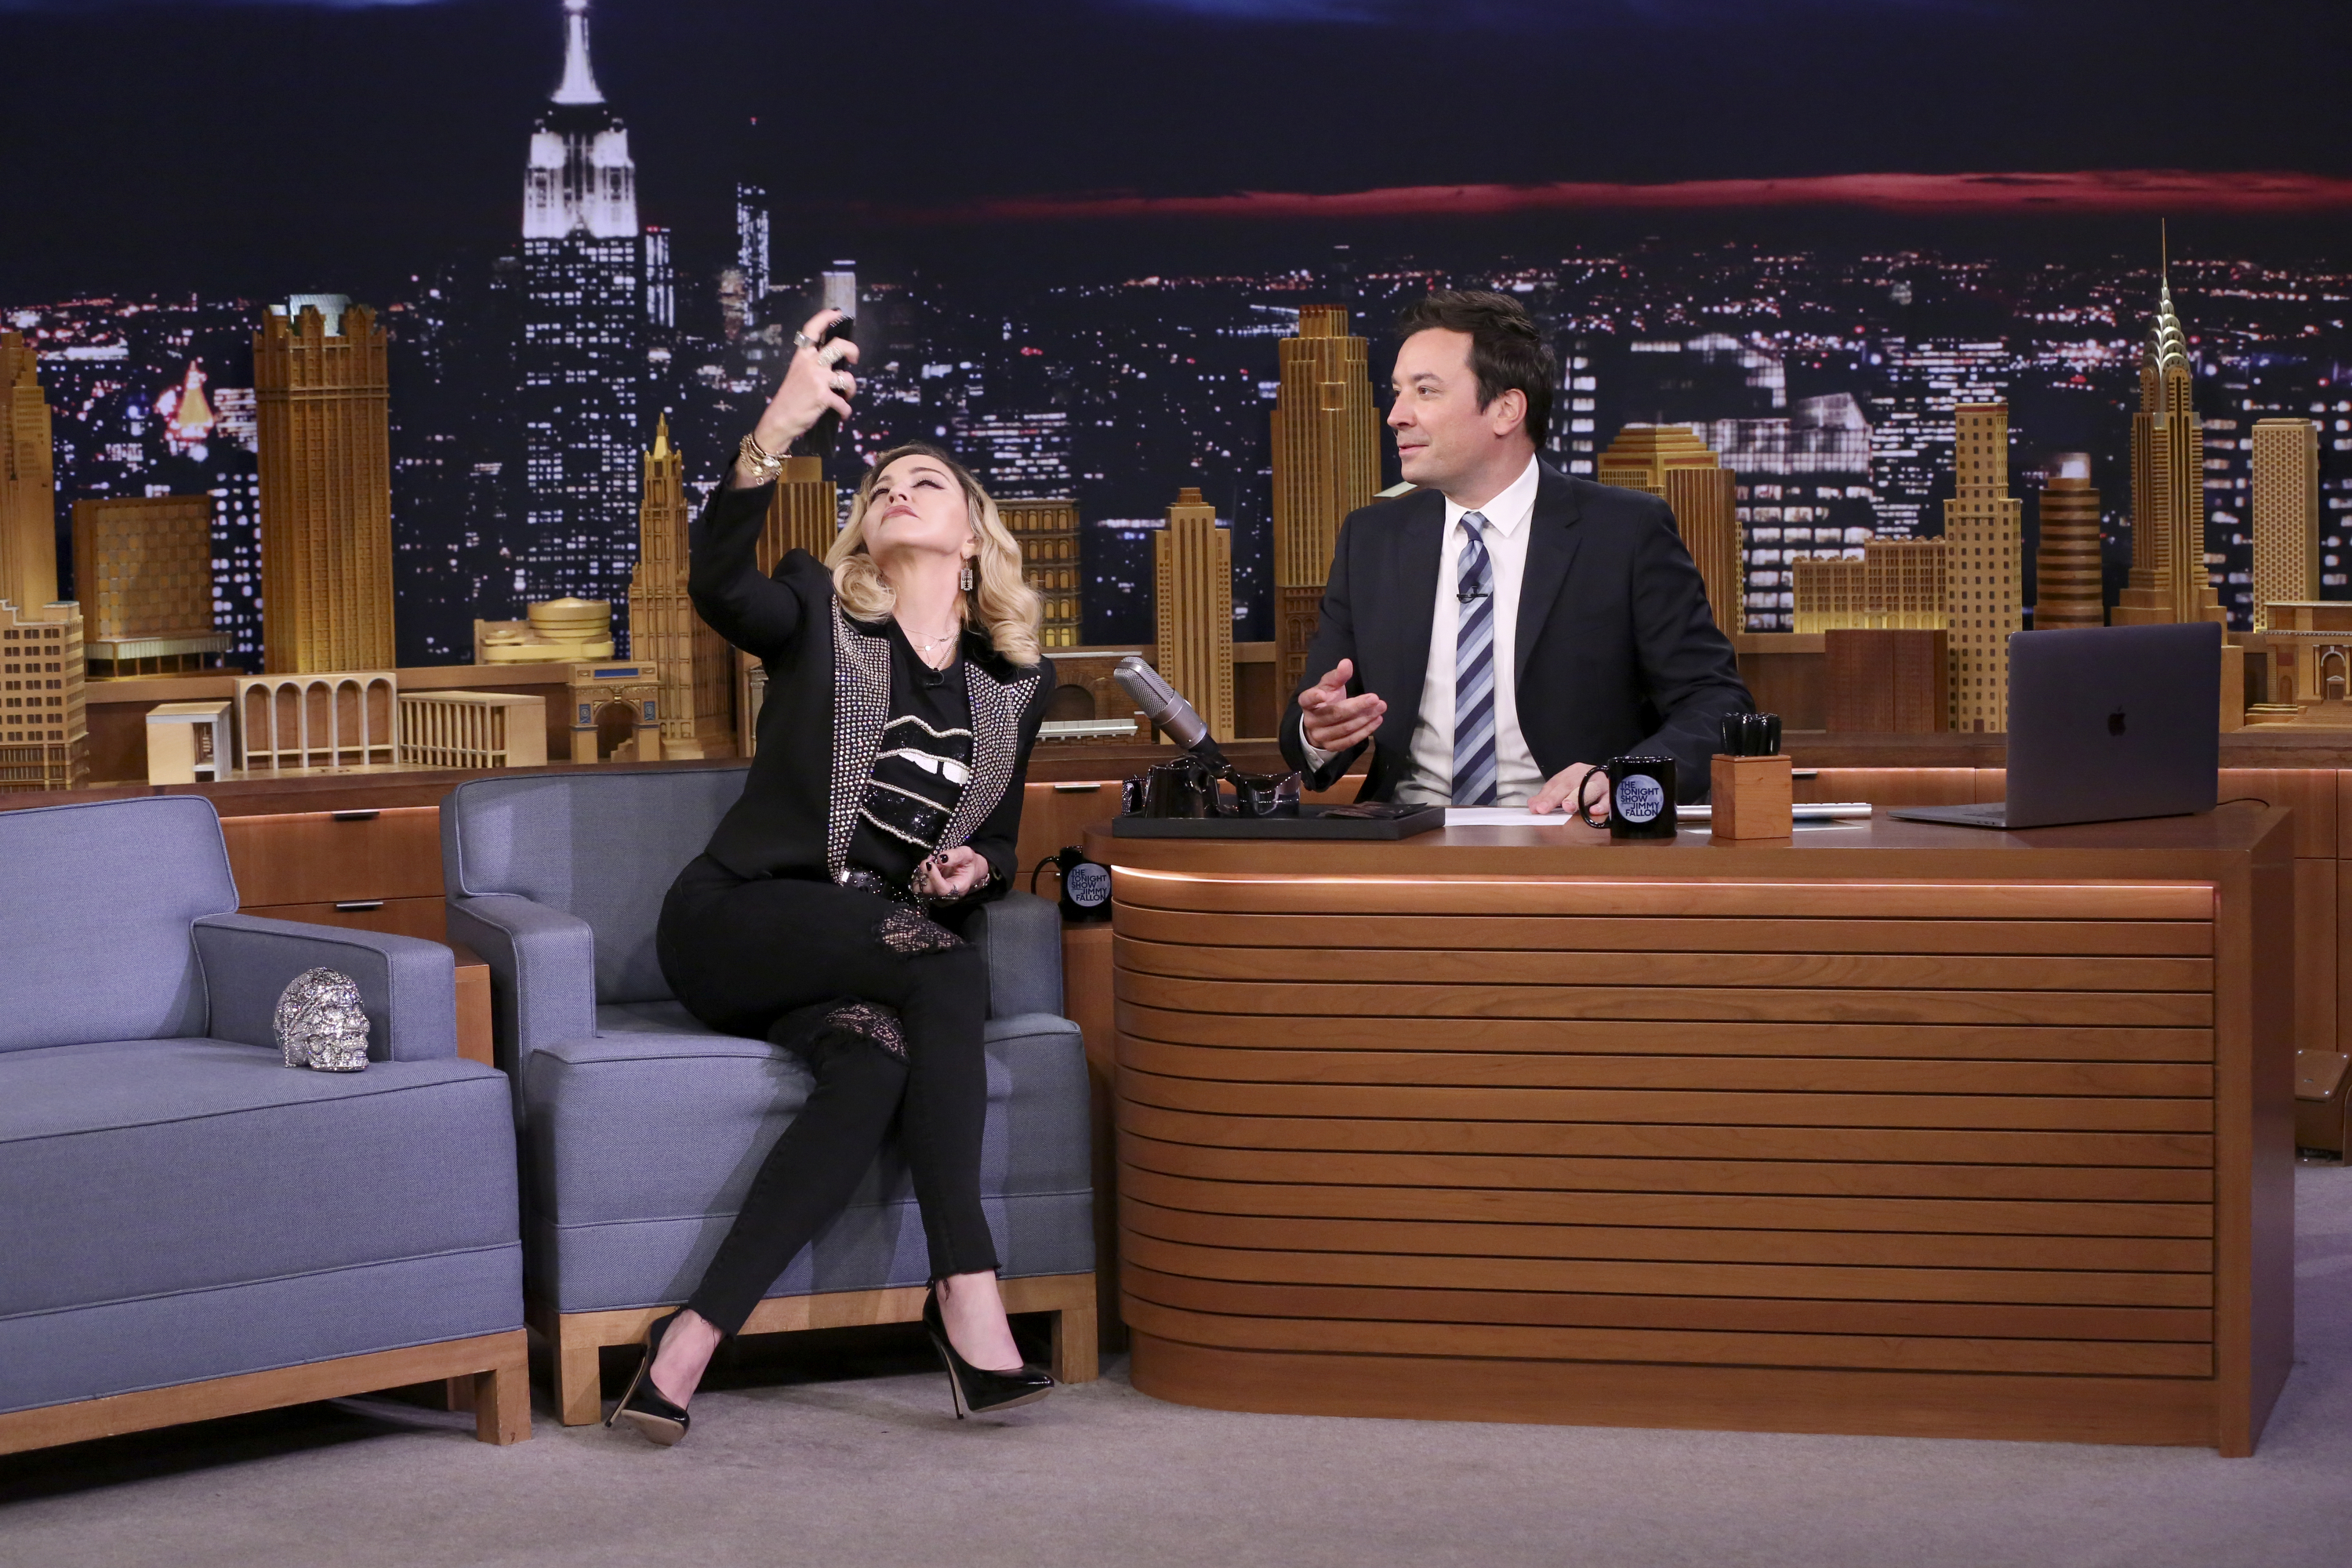 Madonna appears during an interview with Jimmy Fallon on Sept 25, 2017.